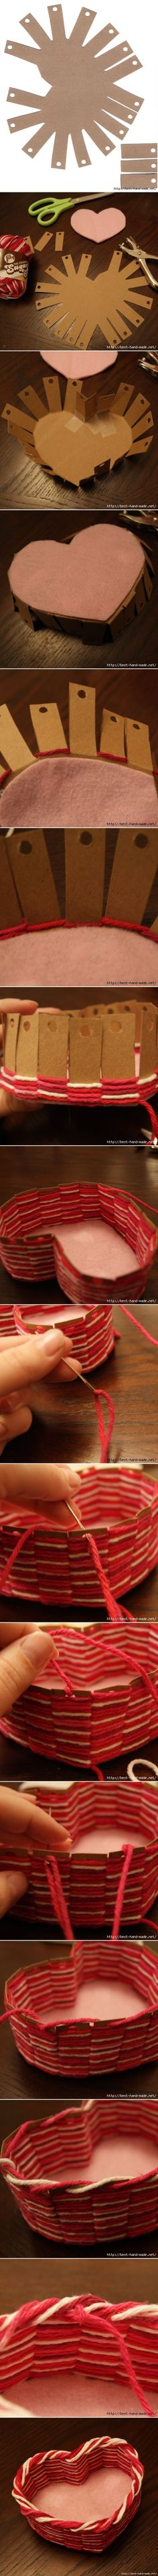 Yarn heart basket tutorial. Click on the link for the tutorial. http://fabricartdiy.com/2014/02/21/yarn-heart-basket-diy/